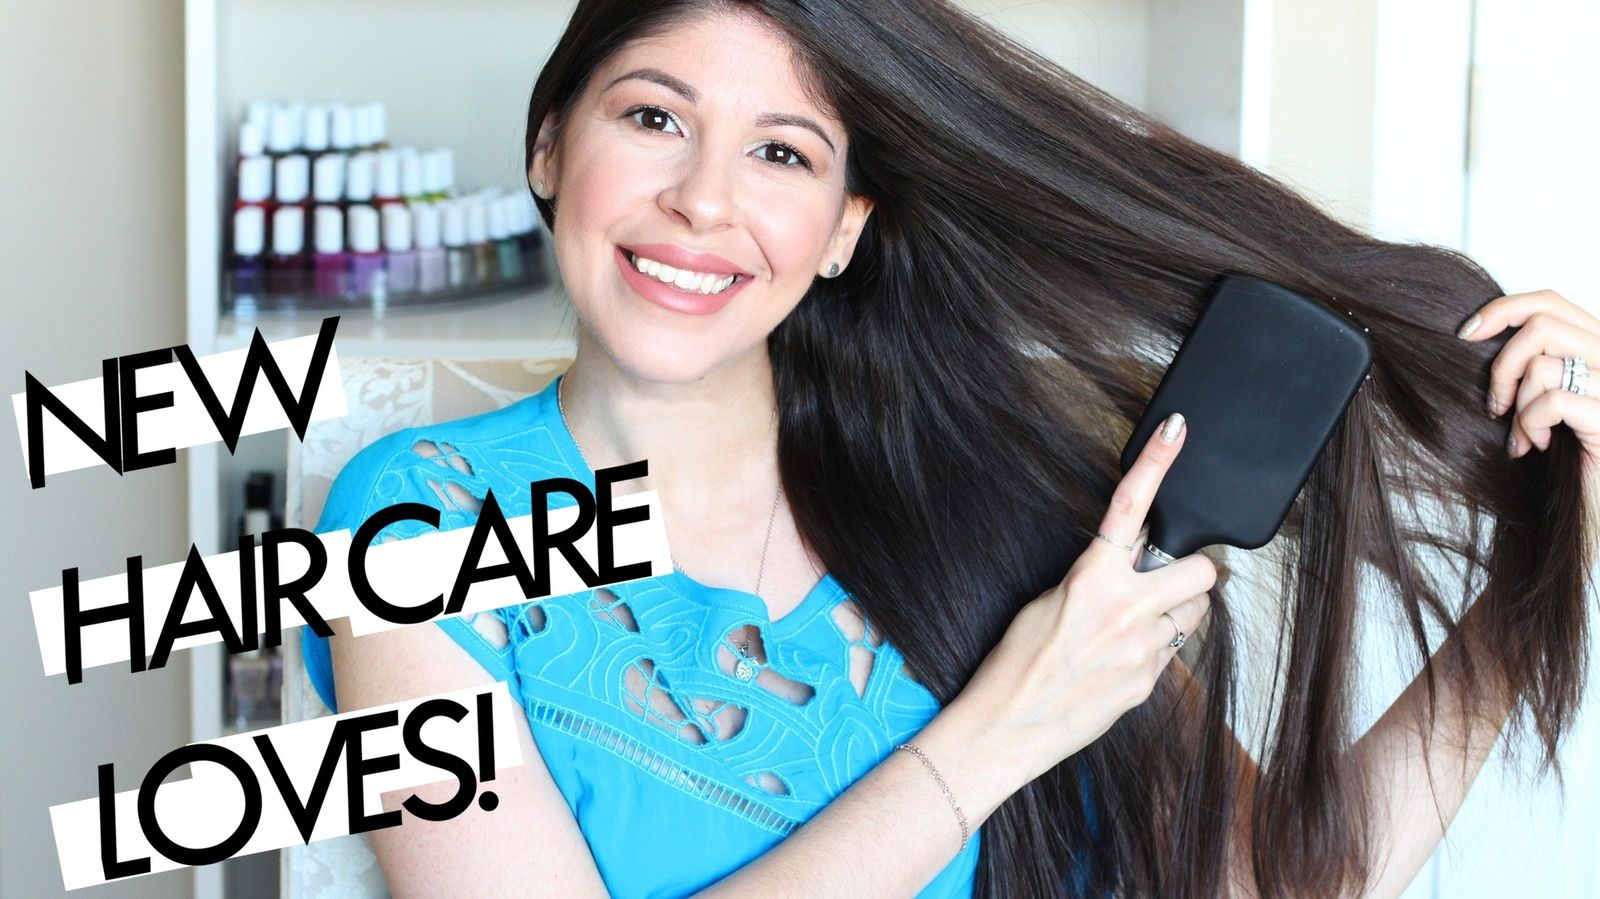 4 New Hair Care Products I'm Loving! 2017